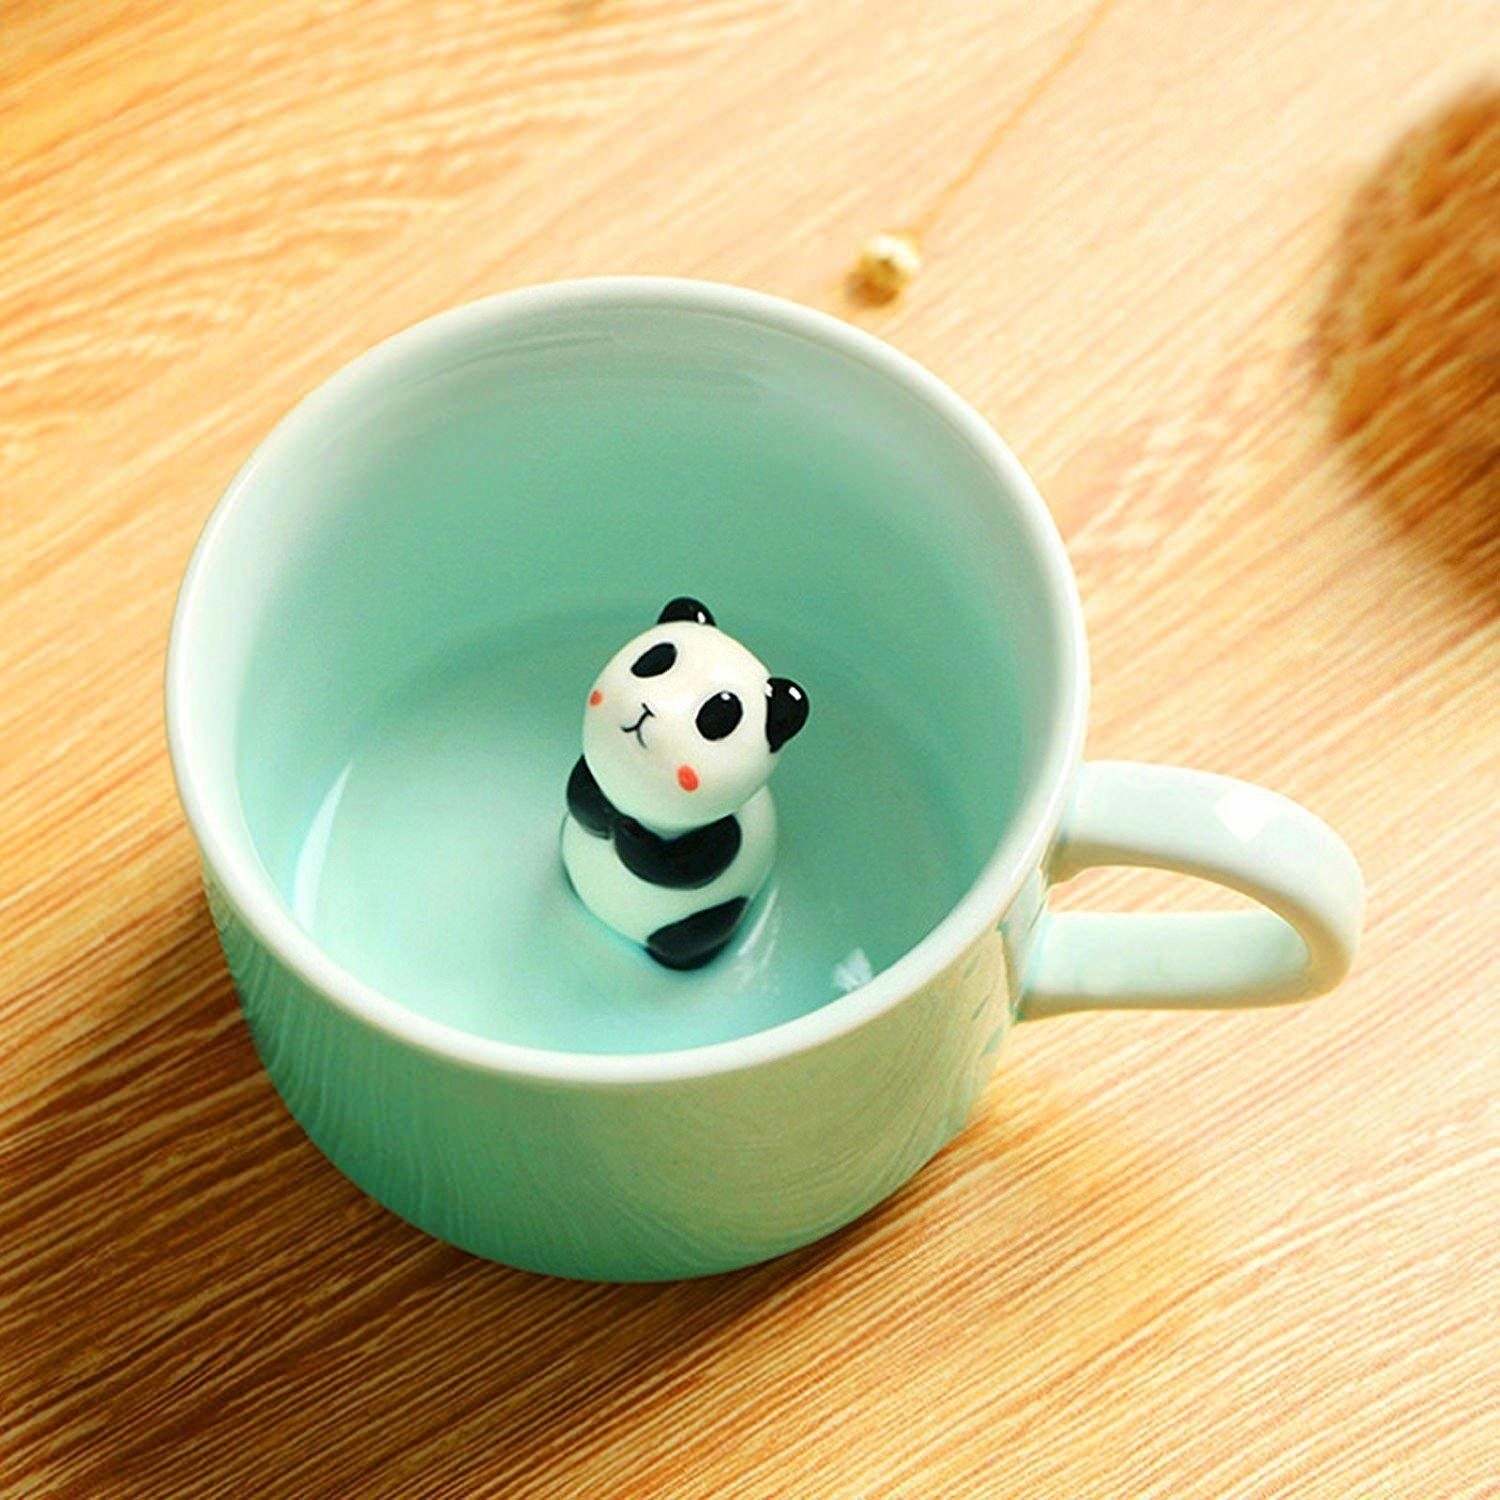 Mug with an adorable panda looking up from the bottom.